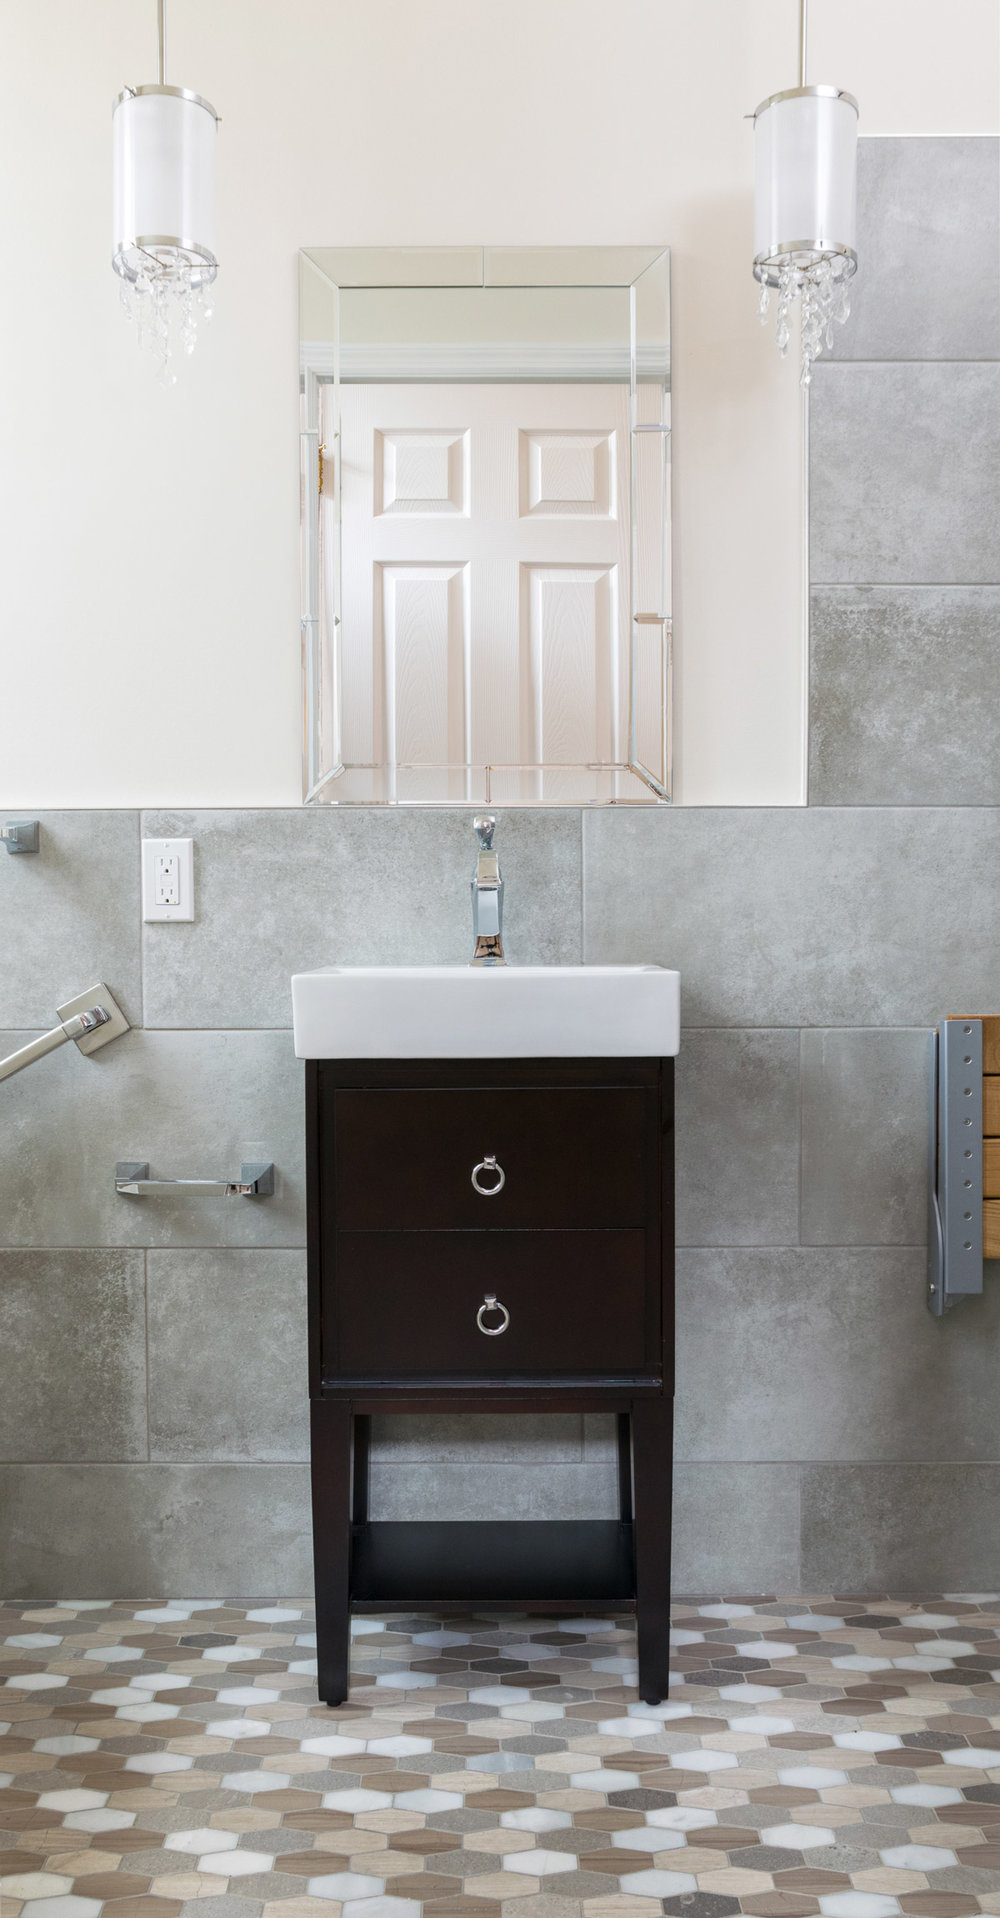 Modern Sink with a Large Mirror